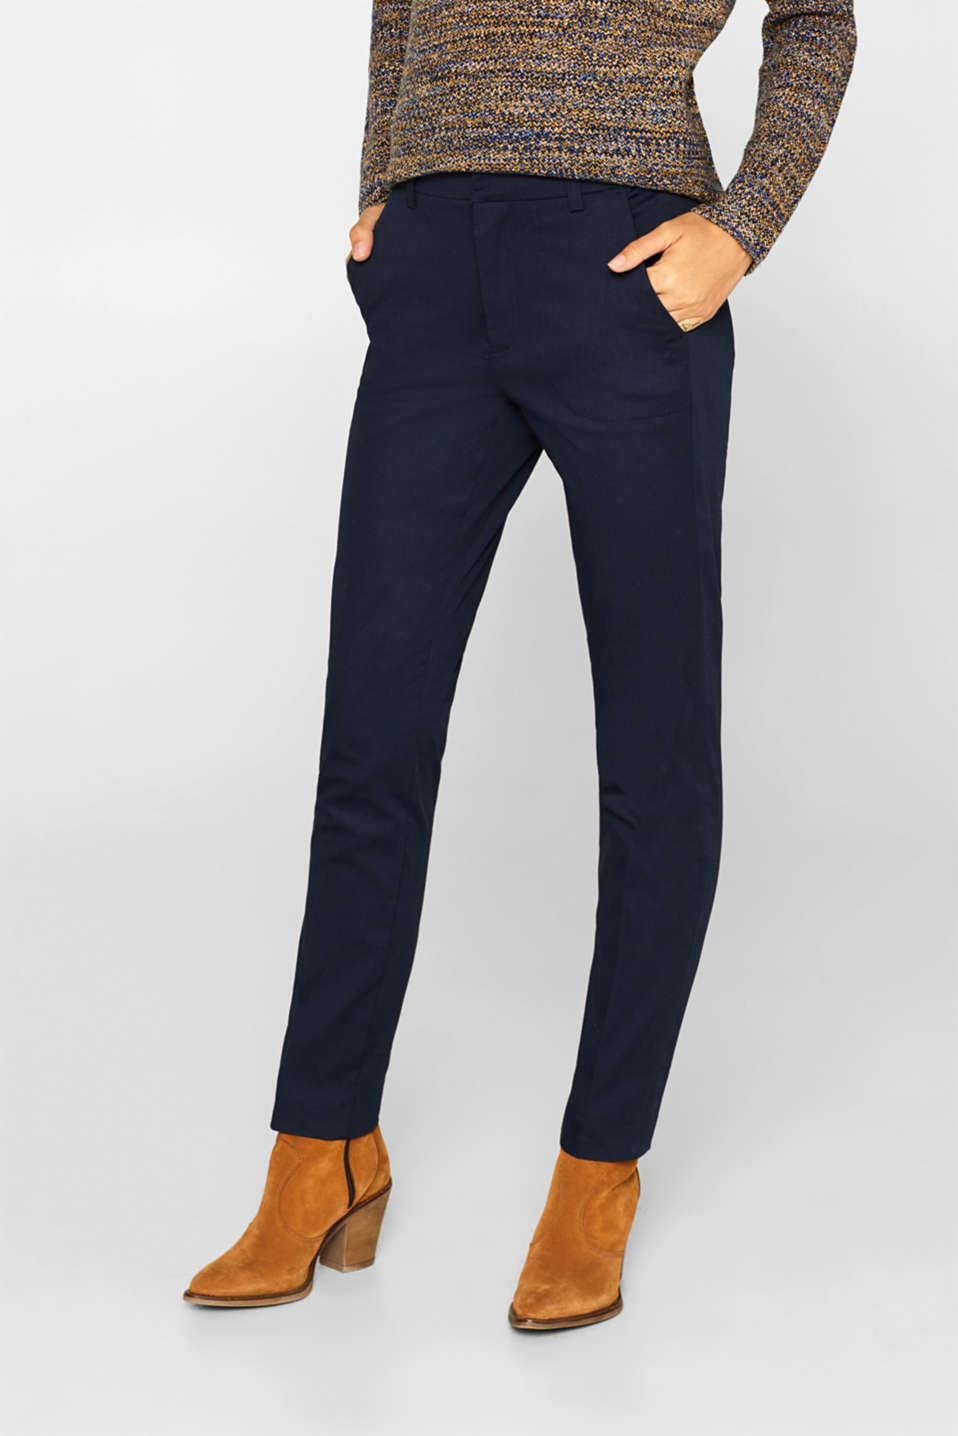 Cotton twill chinos, NAVY, detail image number 5